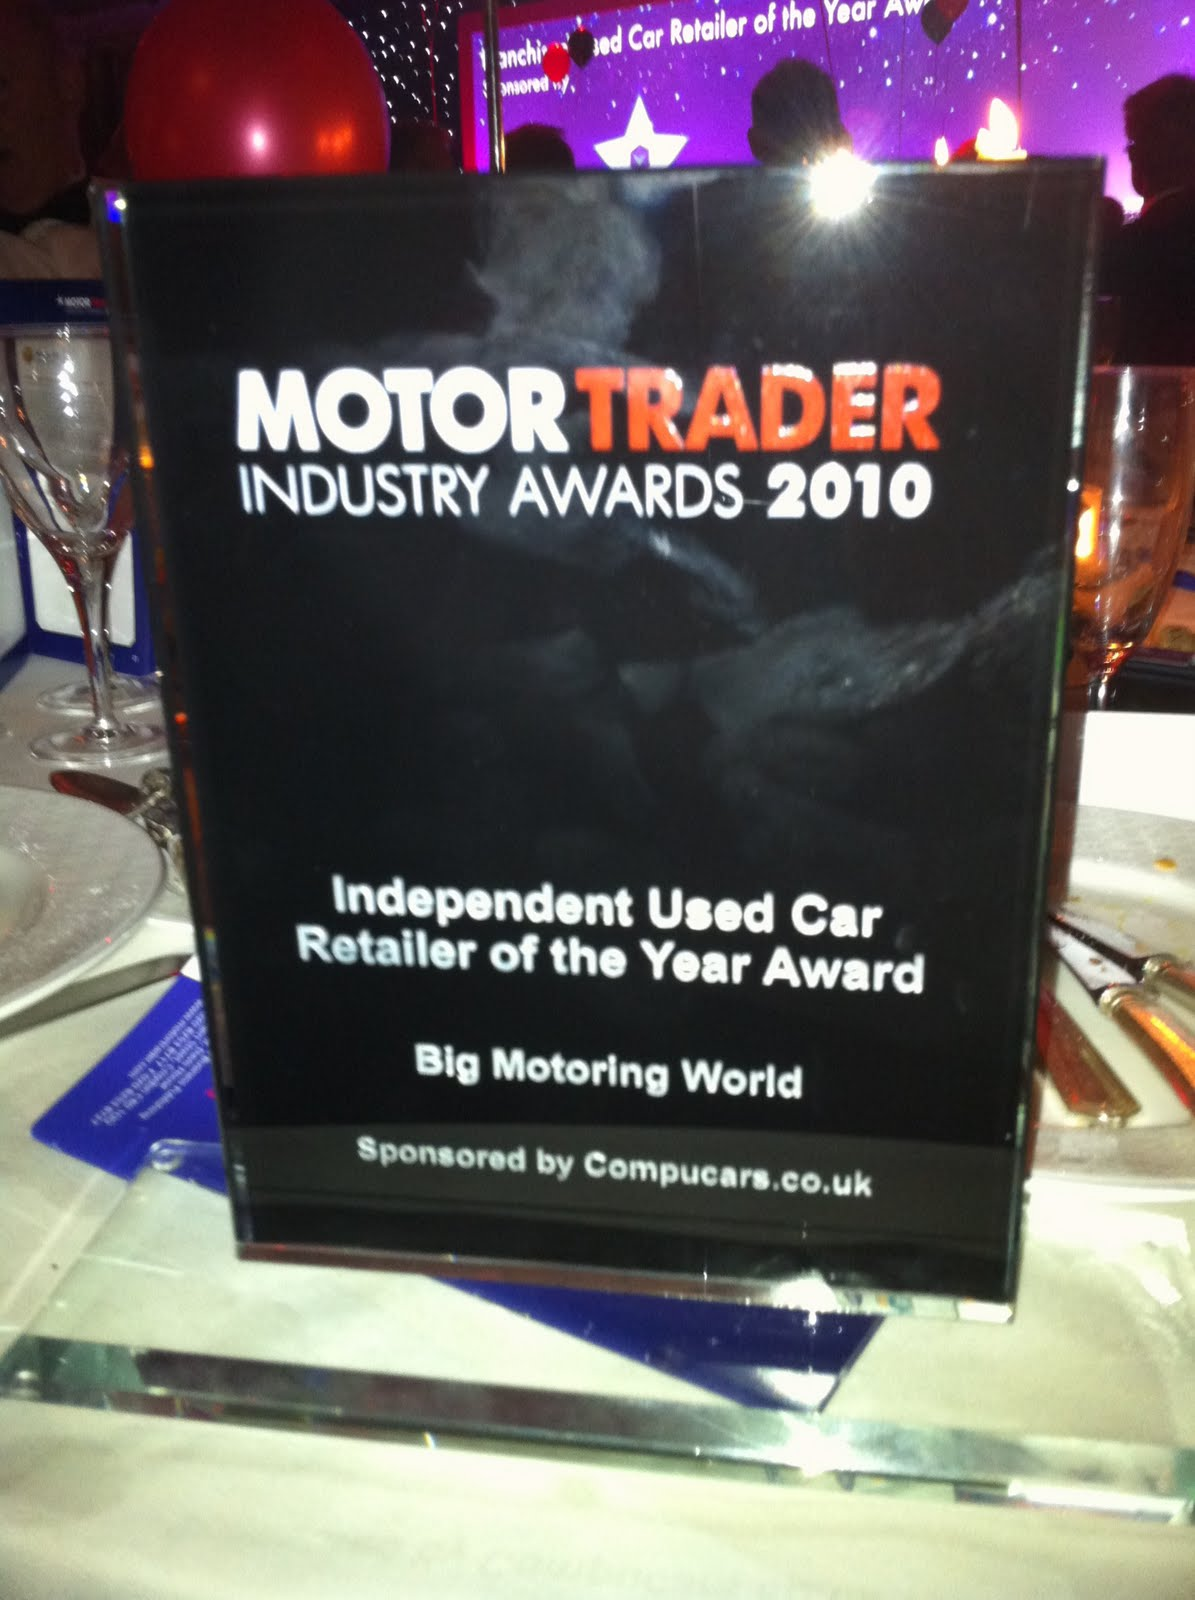 We are proud to share the news that big motoring world recently won independent used car retailer of the year at the motor trader industry awards 2010